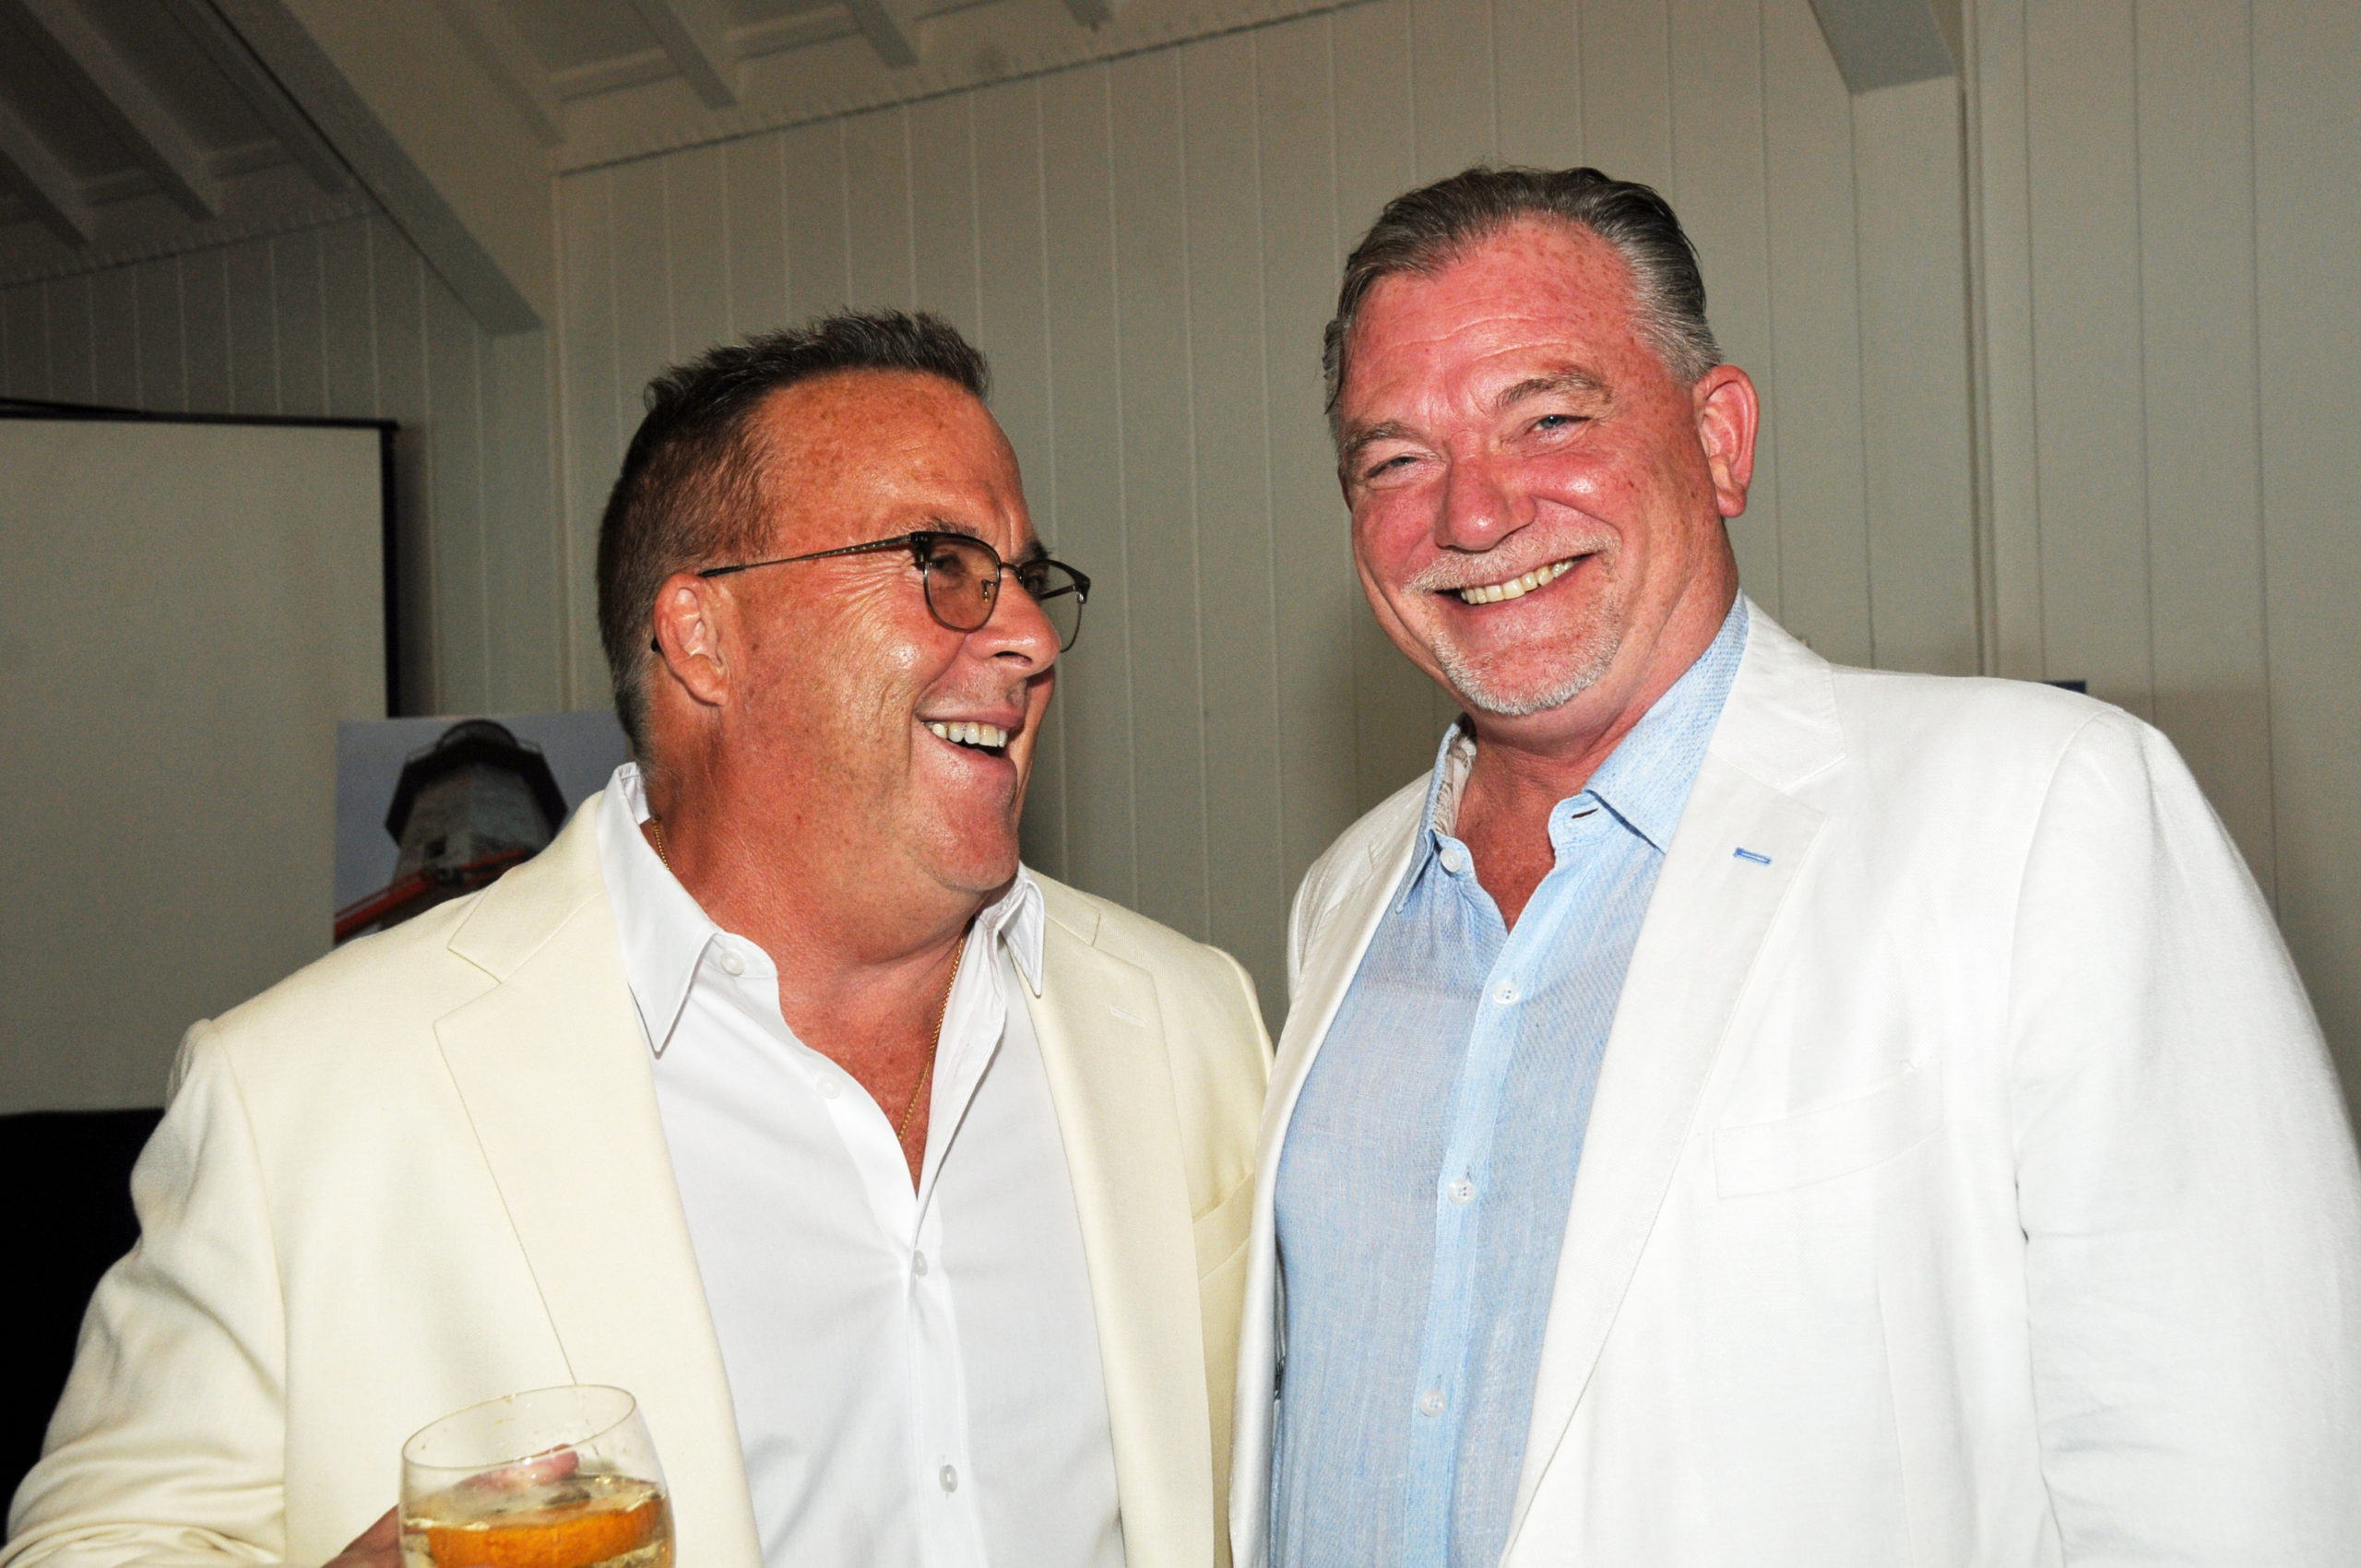 Robert McBride and Kevin O'Connor at the Montauk Historical Society's cocktail party on July 14 to launch a public capital campaign for the Montauk Point Lighthouse restoration.  Work on restoring the tower began in 2019, and is scheduled to be completed by next year.     RICHARD LEWIN